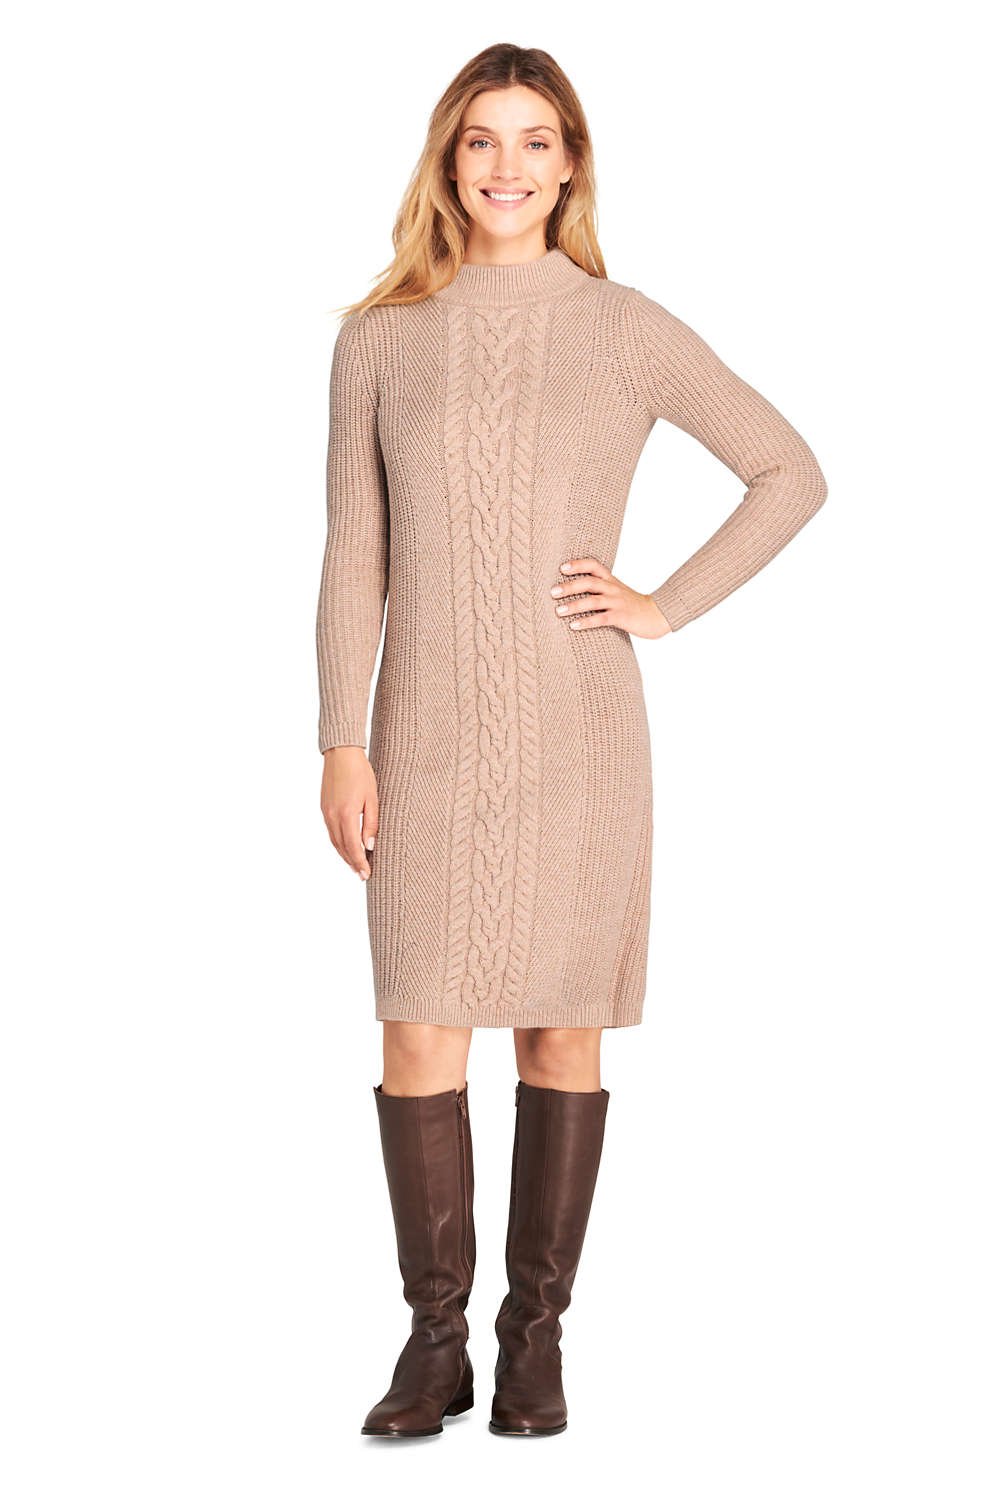 2cebaa001bf Women s Long Sleeve Mock Neck Cable Sweater Dress from Lands  End